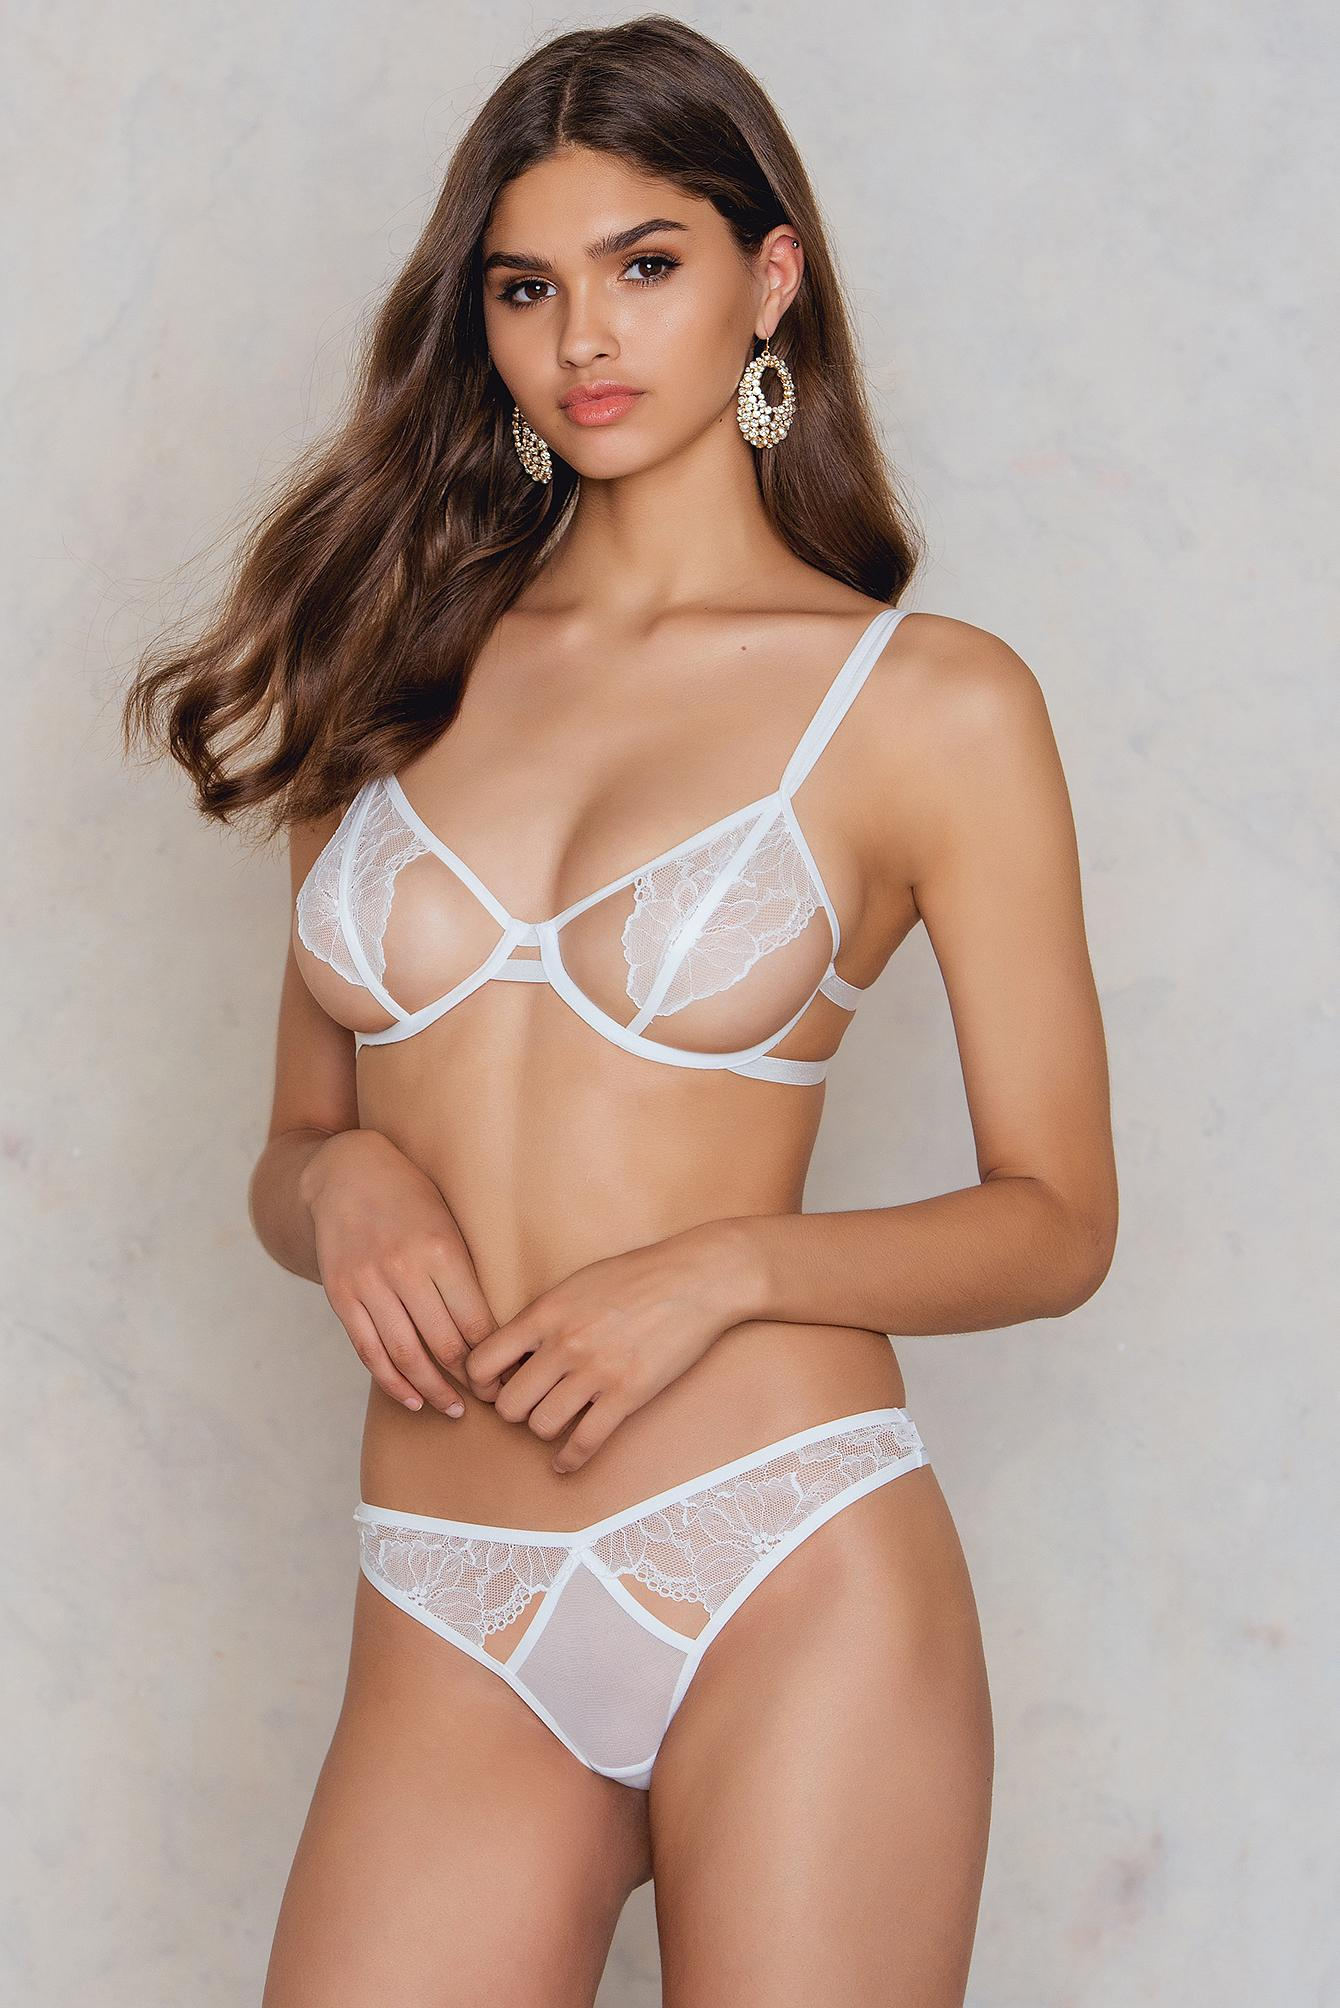 hot mood lingerie girl